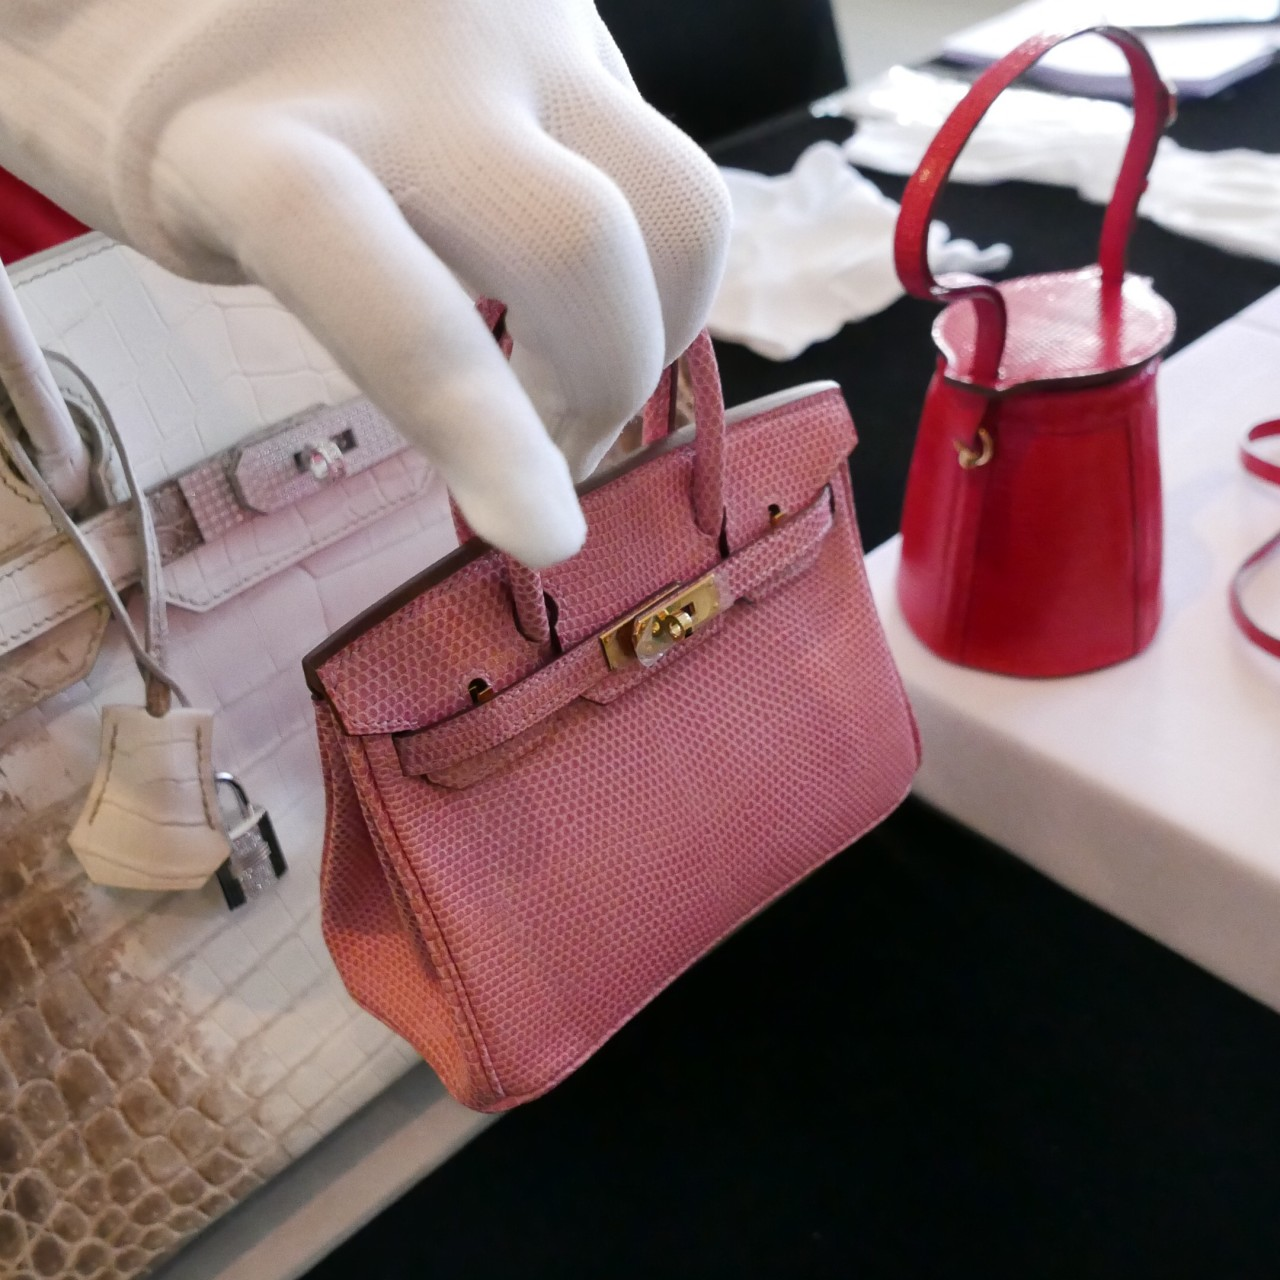 Want to get your hands on a genuine Hermes Birkin? Here's